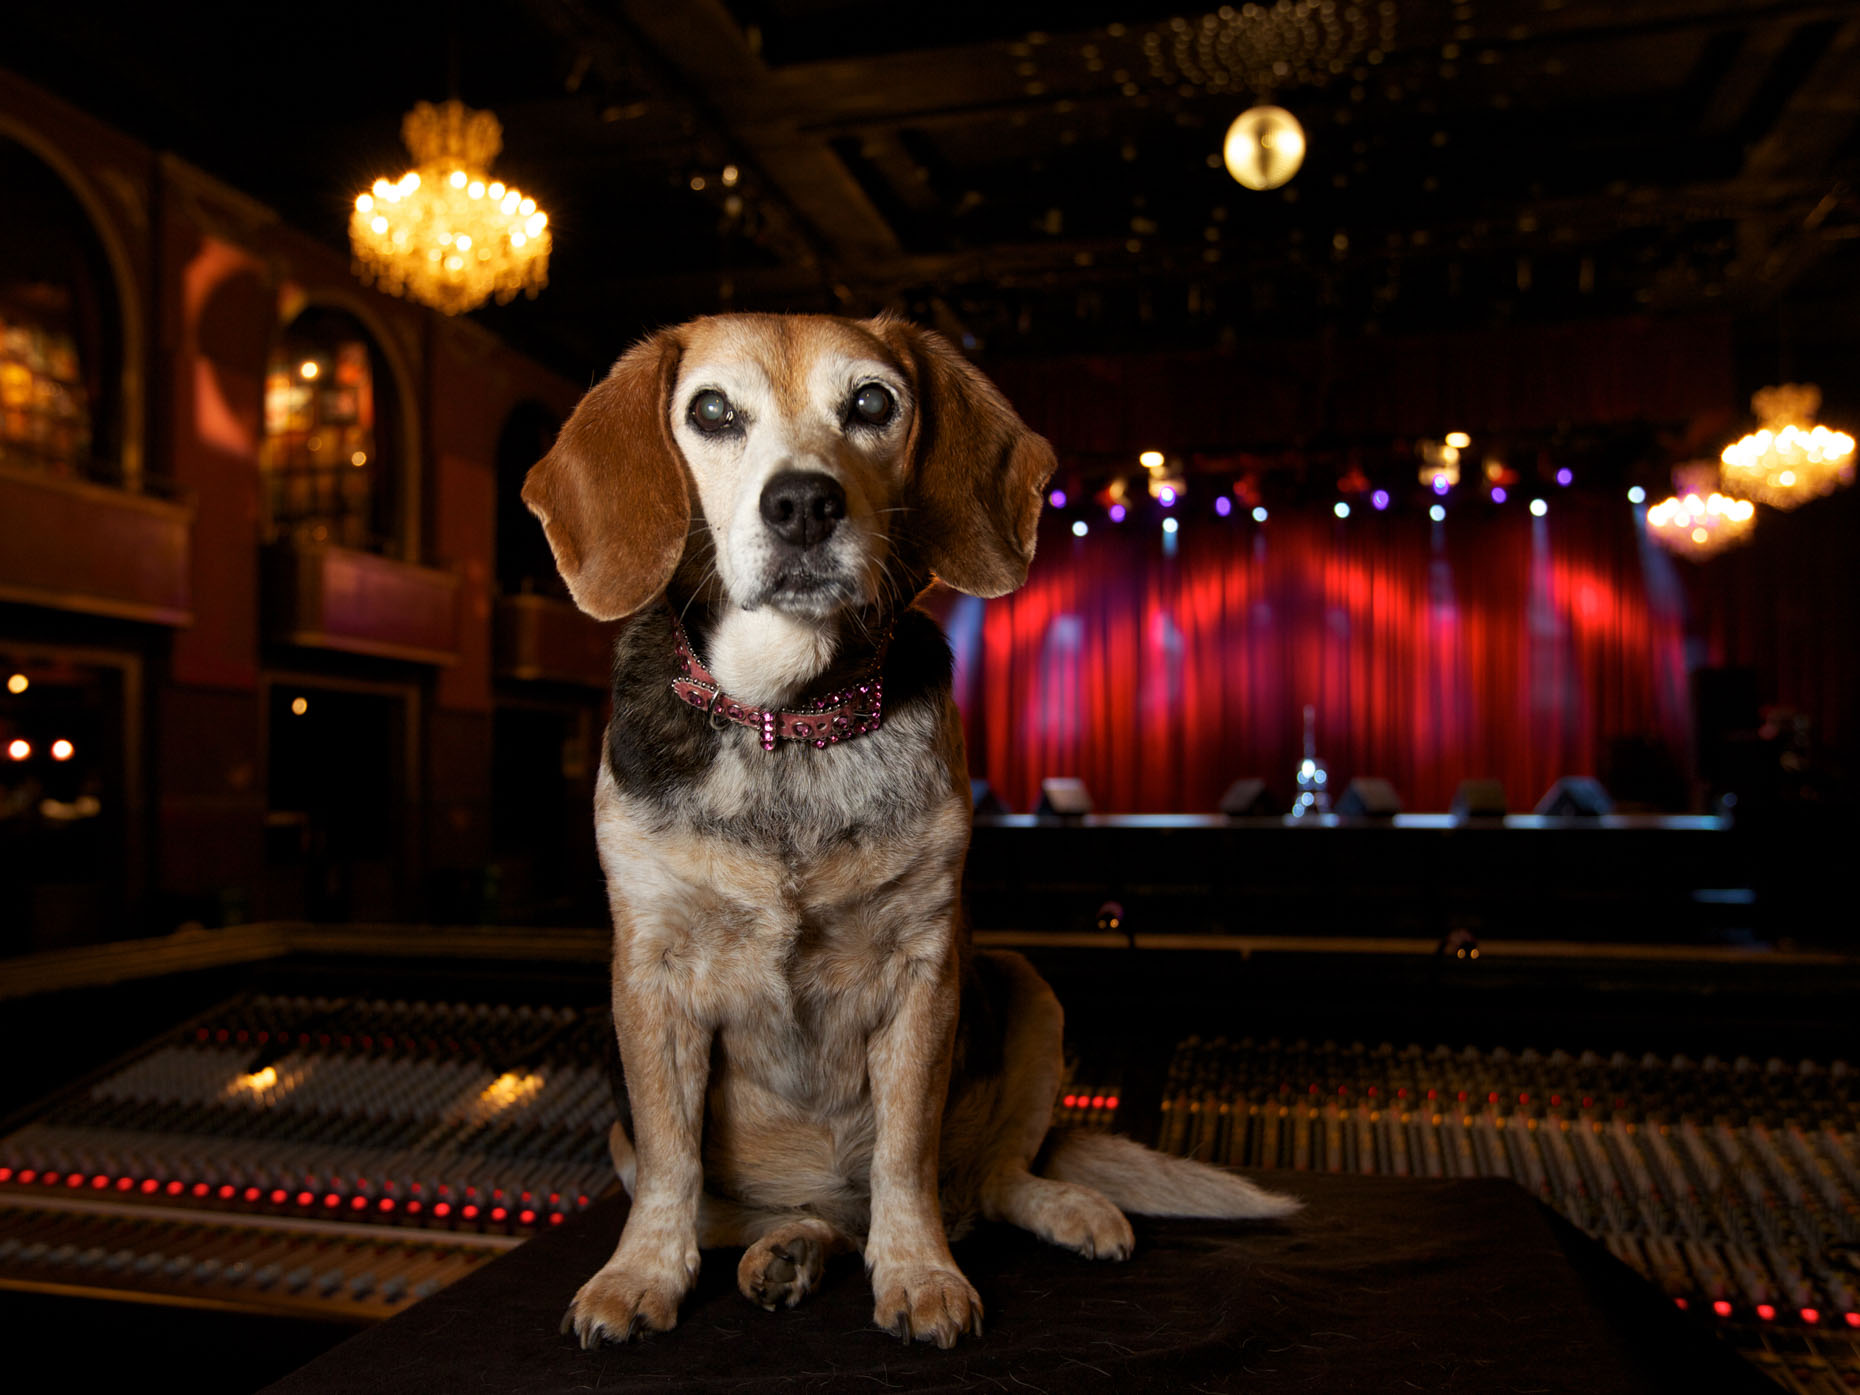 Pet Photography  |  Beagle Dog at Music Venue by Mark Rogers